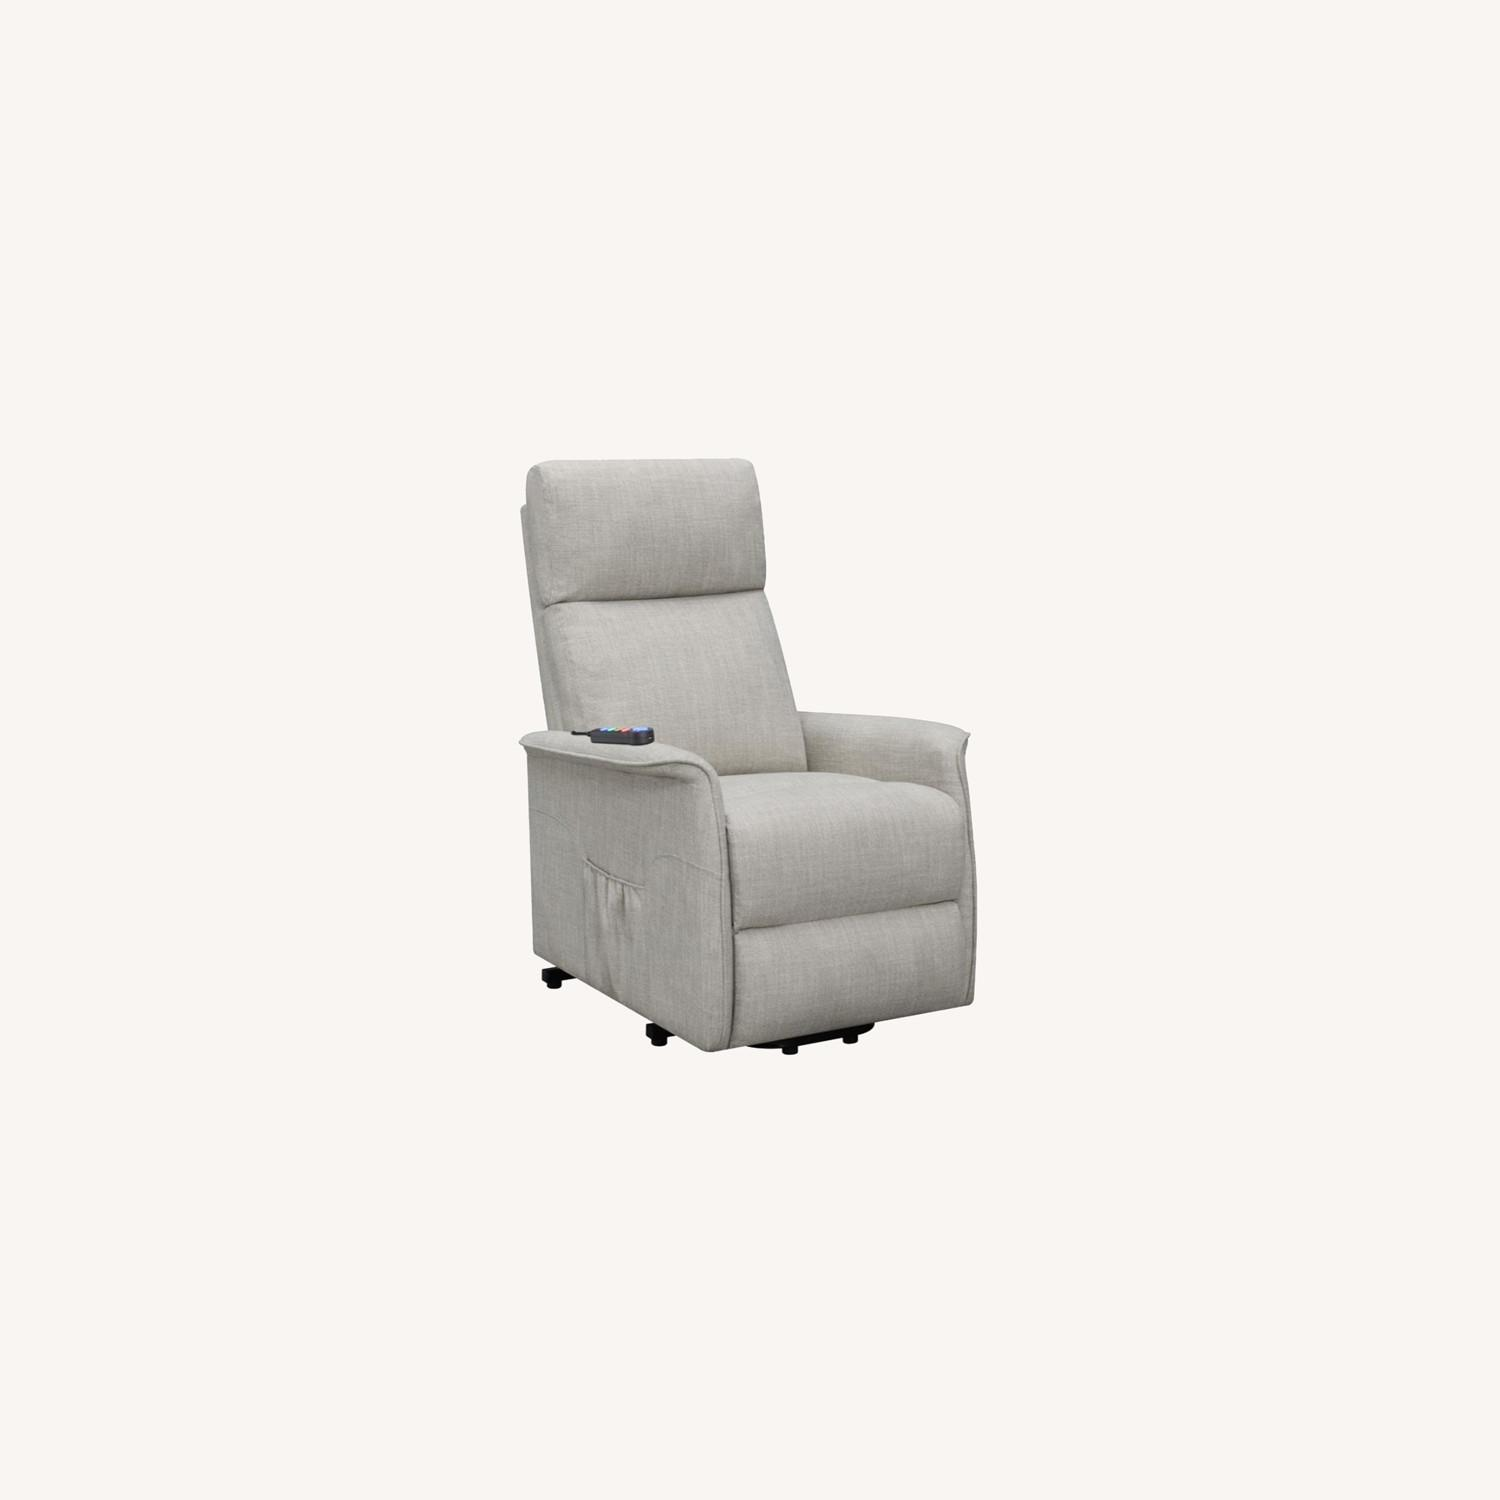 Power Lift Recliner Tufted In Beige Fabric - image-10